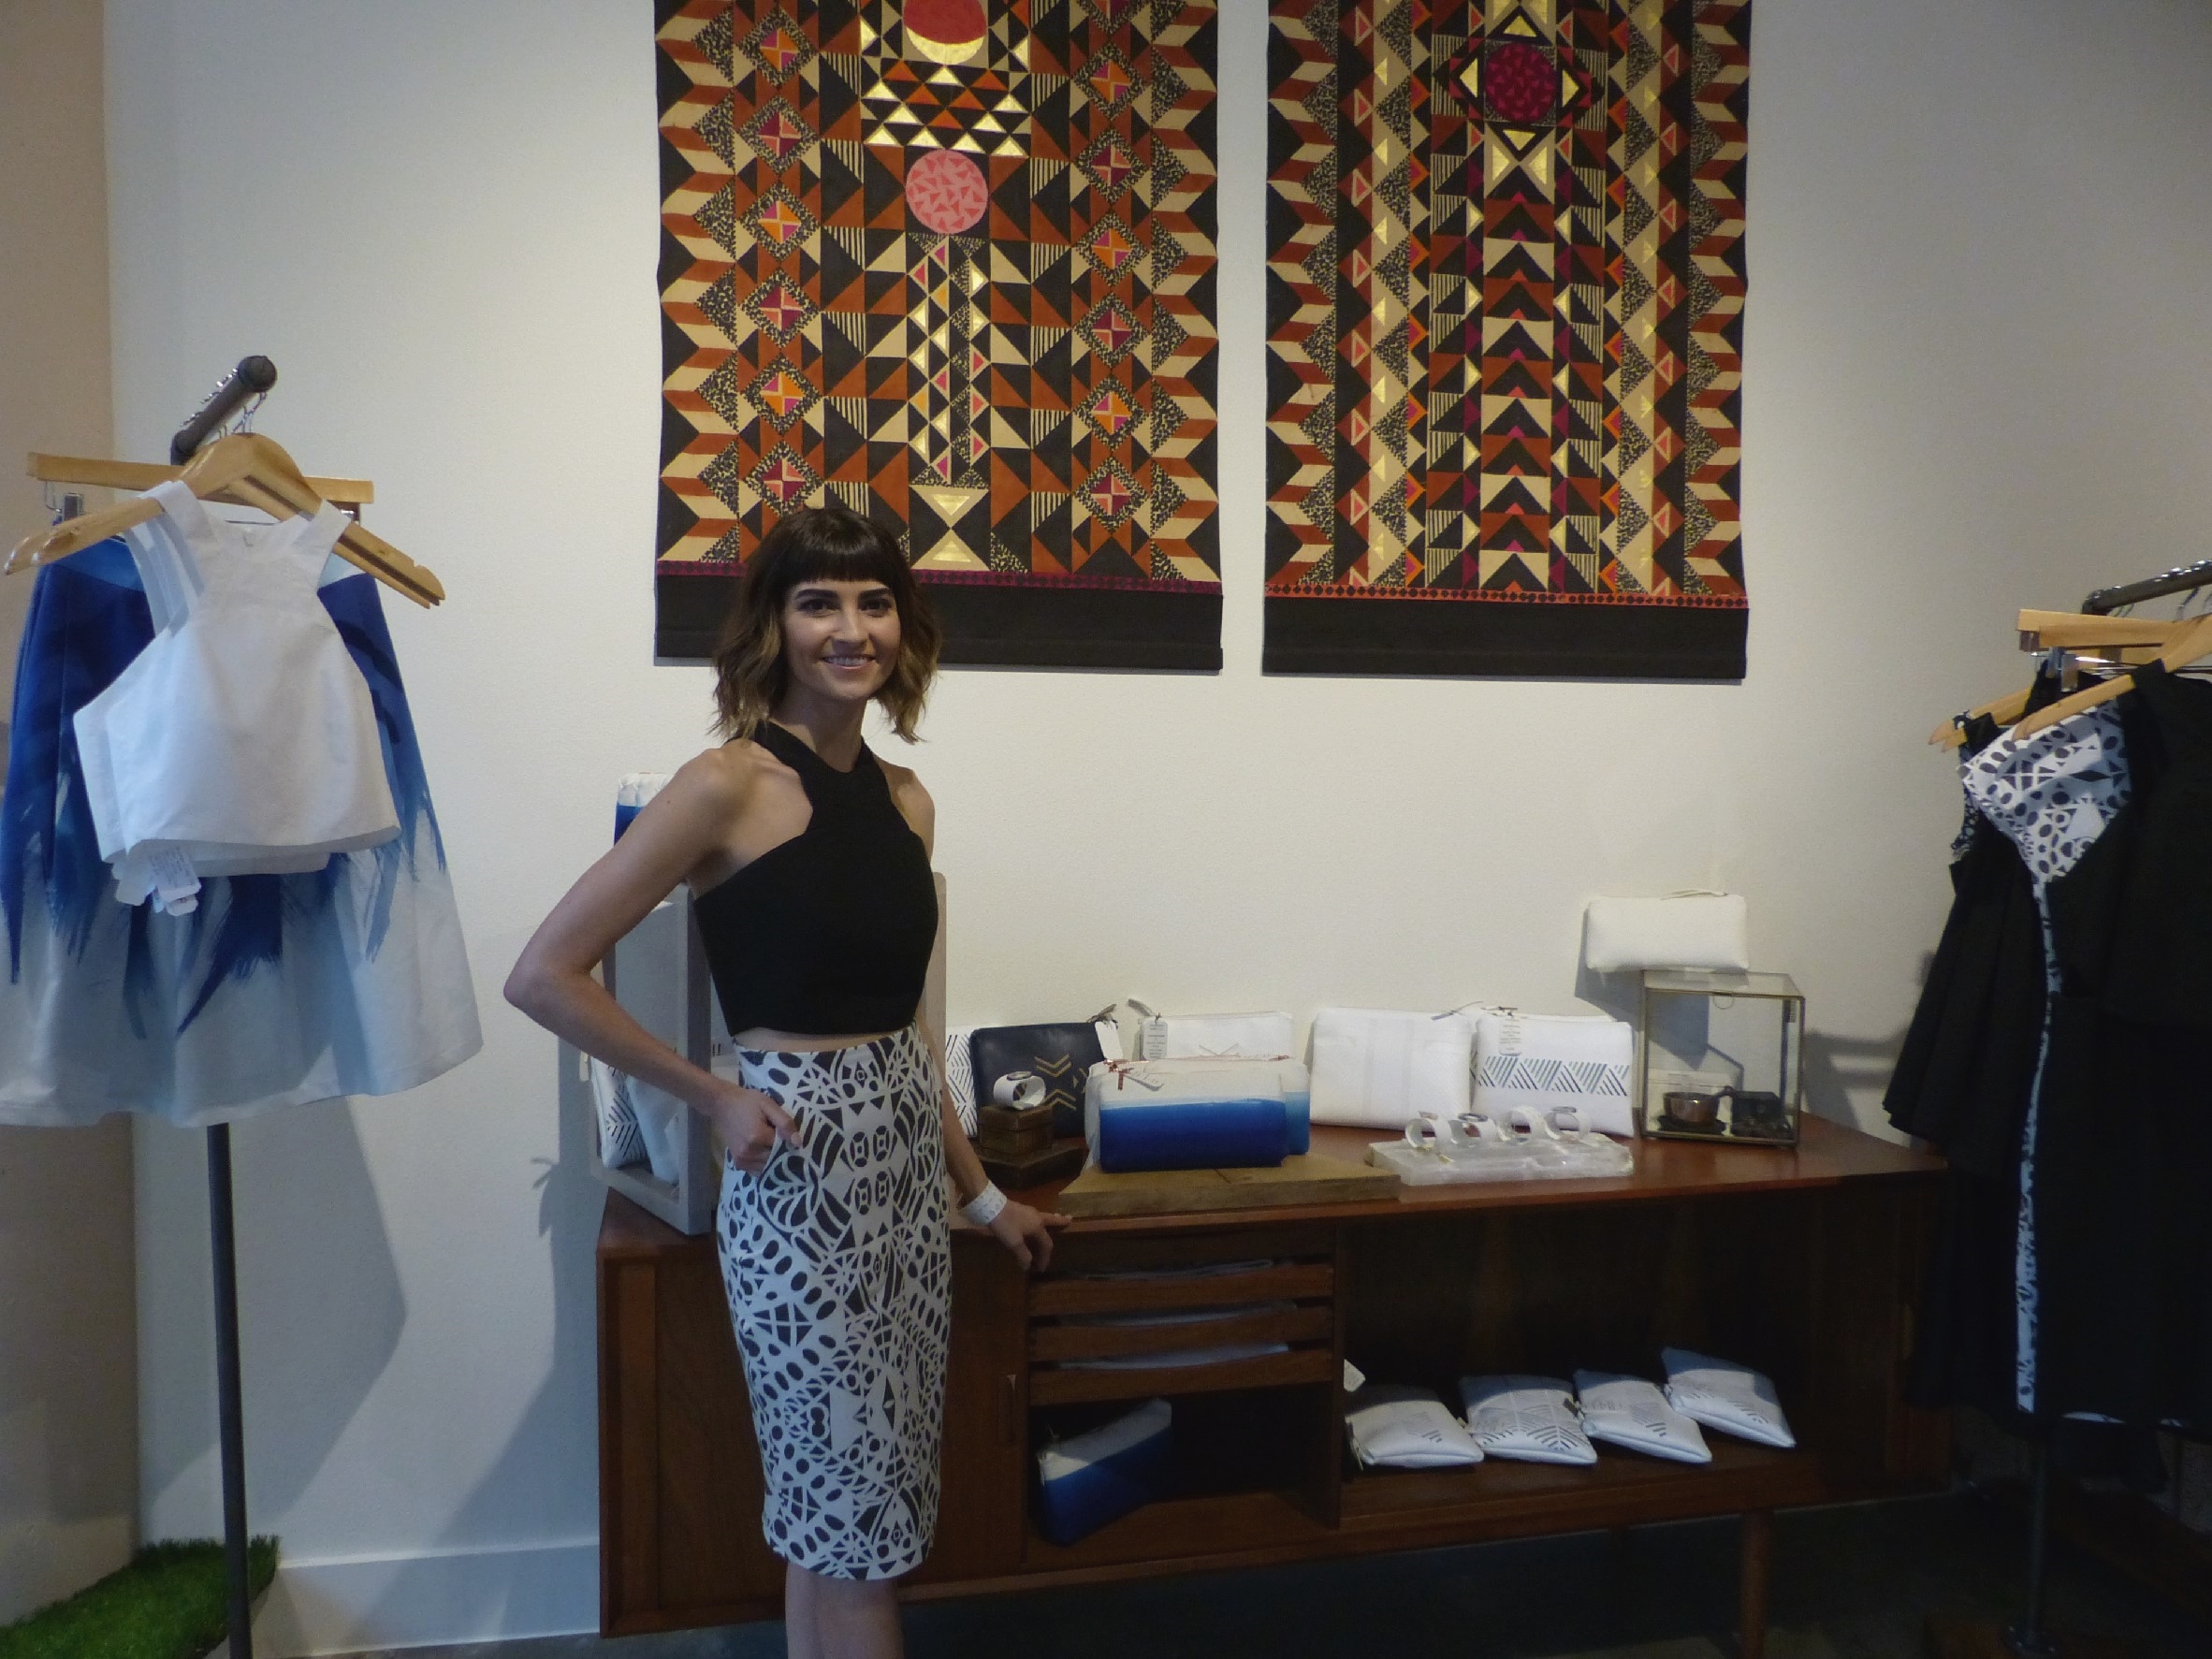 Stef standing next to her trunk show